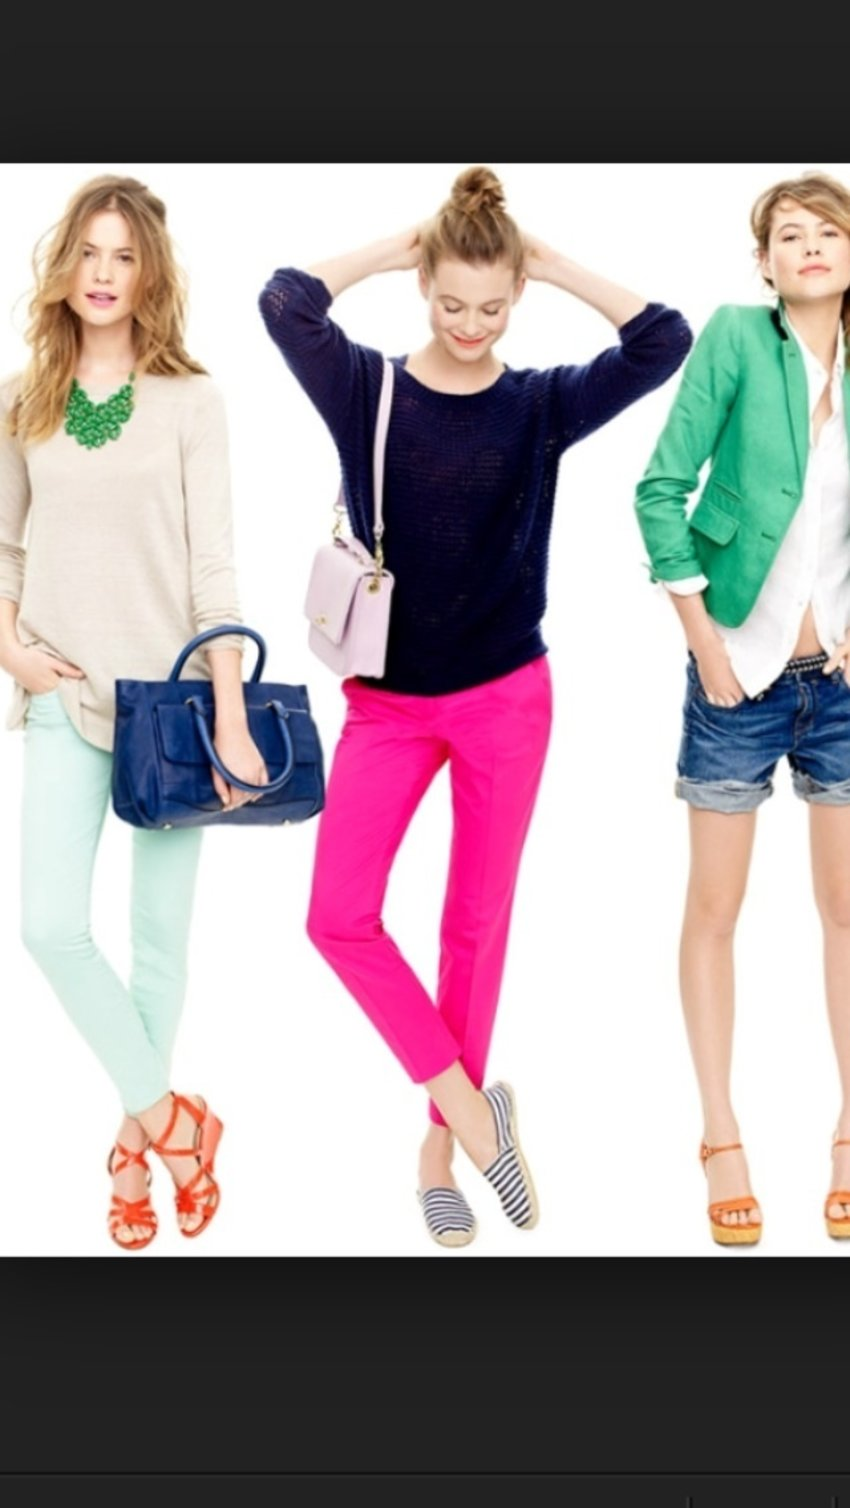 Looking for everyday casual look? What about these 3 options?